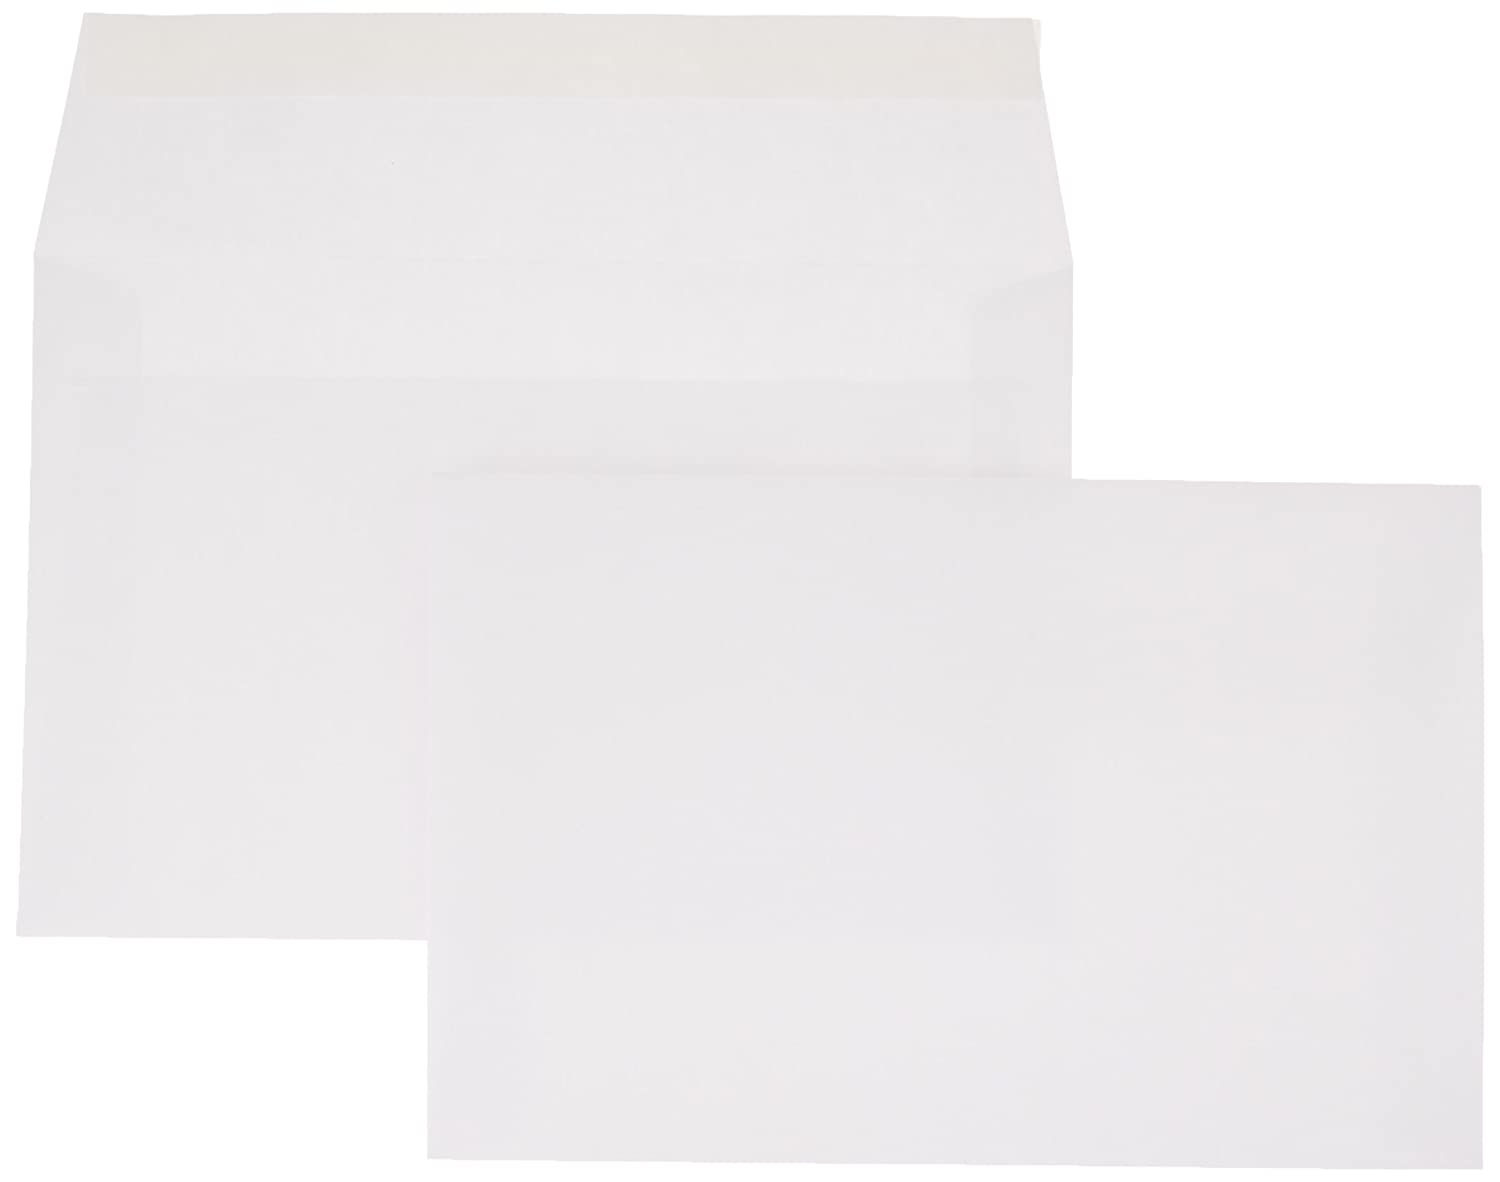 AmazonBasics A9 Invitation Envelope, Peel & Seal, White, 100-Pack (5-3/4 x 8-3/4 inches)